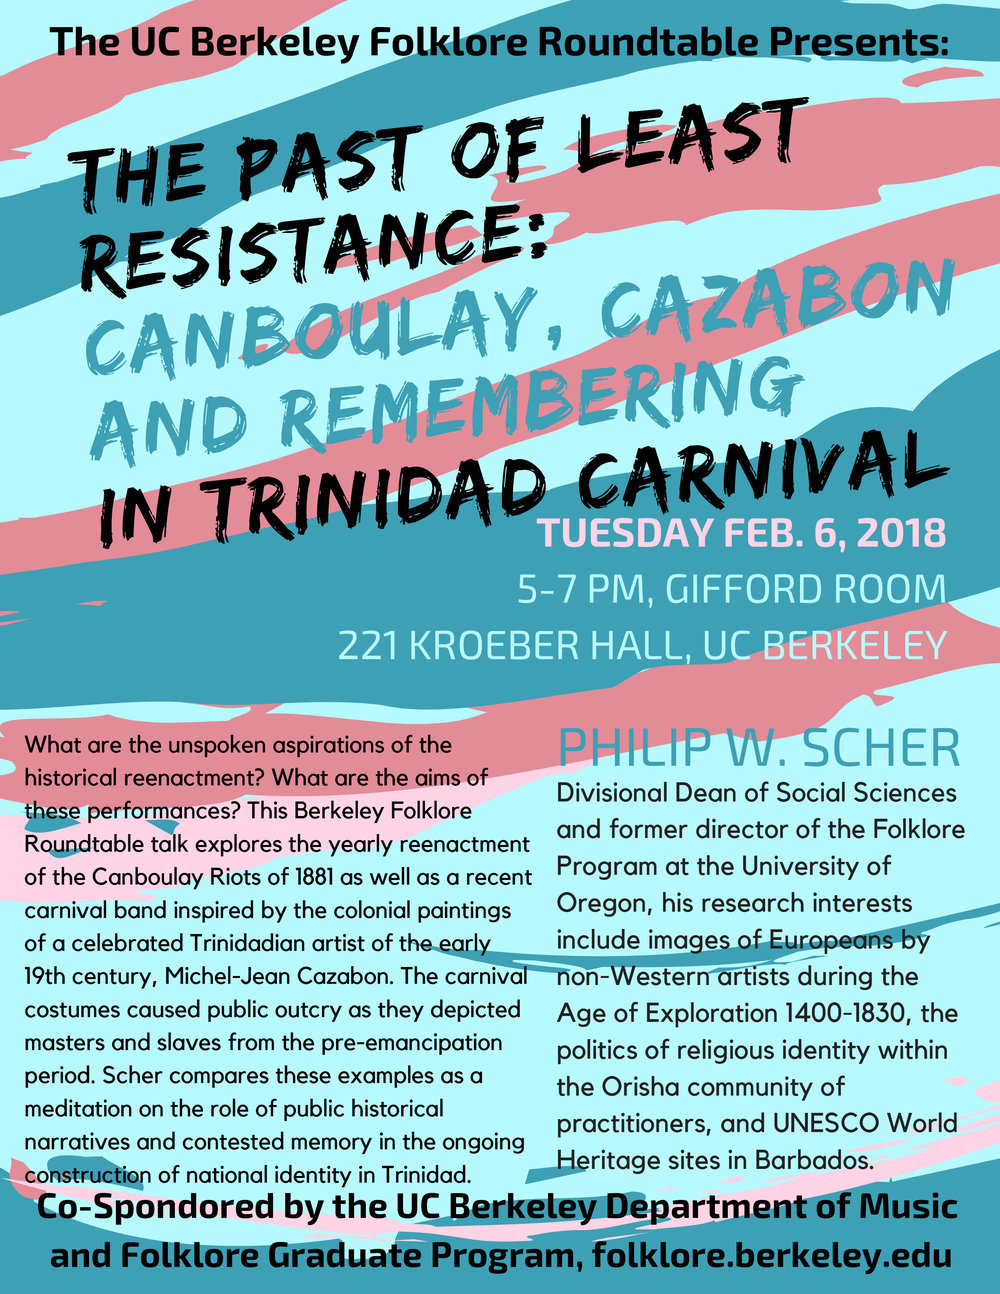 The UC Berkeley Folklore Roundtable presents: THE PAST OF LEAST RESISTANCE: CANBOULAY, CAZABON AND REMEMBERING IN TRINIDAD CARNIVAL Tuesday 6 February 2018 5:00-7:00 PM 221 Kroeber Hall (Gifford Room) Professor Philip W. Scher, Divisional Dean of Social Sciences, University of Oregon What are the unspoken aspirations of the historical reenactment? What are the aims of these performances? This Berkeley Folklore Roundtable talk explores the yearly reenactment of the Canboulay Riots of 1881 as well as a recent carnival band inspired by the colonial paintings of a celebrated Trinidadian artist of the early 19th century, Michel-Jean Cazabon. The carnival costumes caused public outcry as they depicted masters and slaves from the pre-emancipation period. Scher compares these examples as a meditation on the role of public historical narratives and contested memory in the ongoing construction of national identity in Trinidad. Dr. Philip Scher is Divisional Dean of Social Sciences and former director of the Folklore Program at the University of Oregon. His research interests include images of Europeans by non-Western artists during the Age of Exploration 1400-1830, the politics of religious identity within the Orisha community of practitioners, and UNESCO World Heritage sites in Barbados. Co-Sponsored by the Department of Music and Folklore Graduate ProgramQuestions? ucbfolklore@berkeley.edu